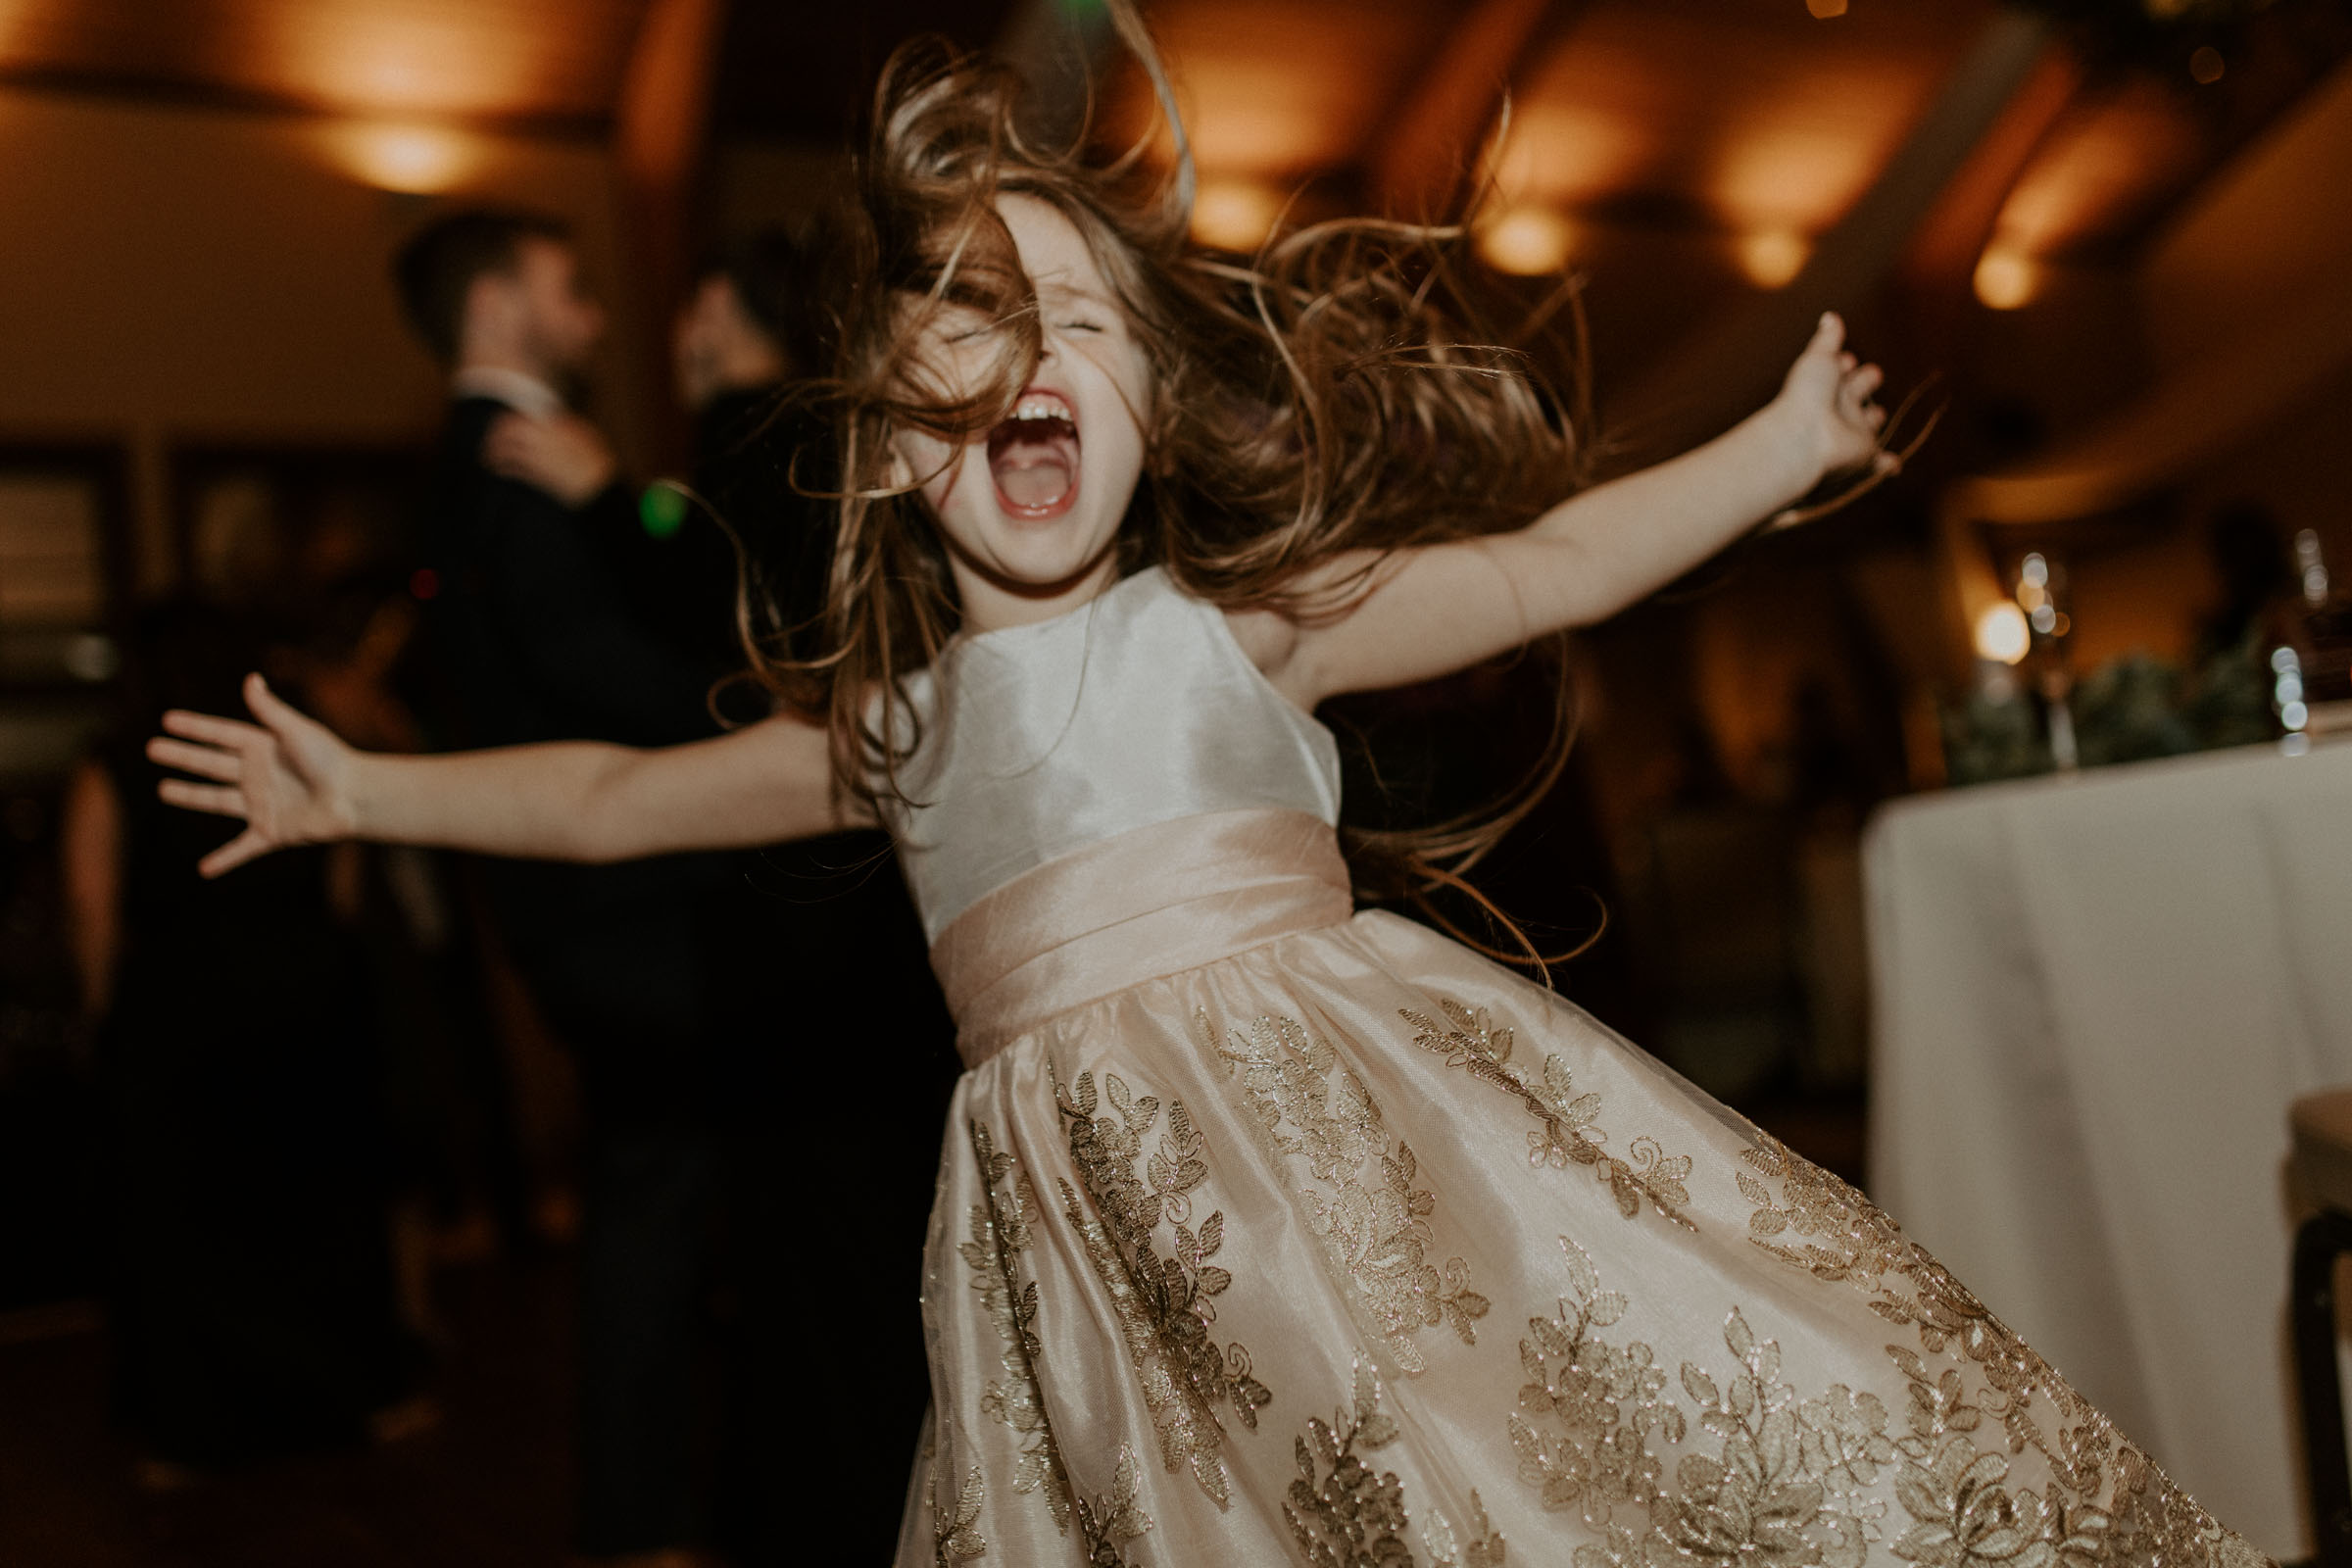 adorable flower girl jumping around at wedding reception